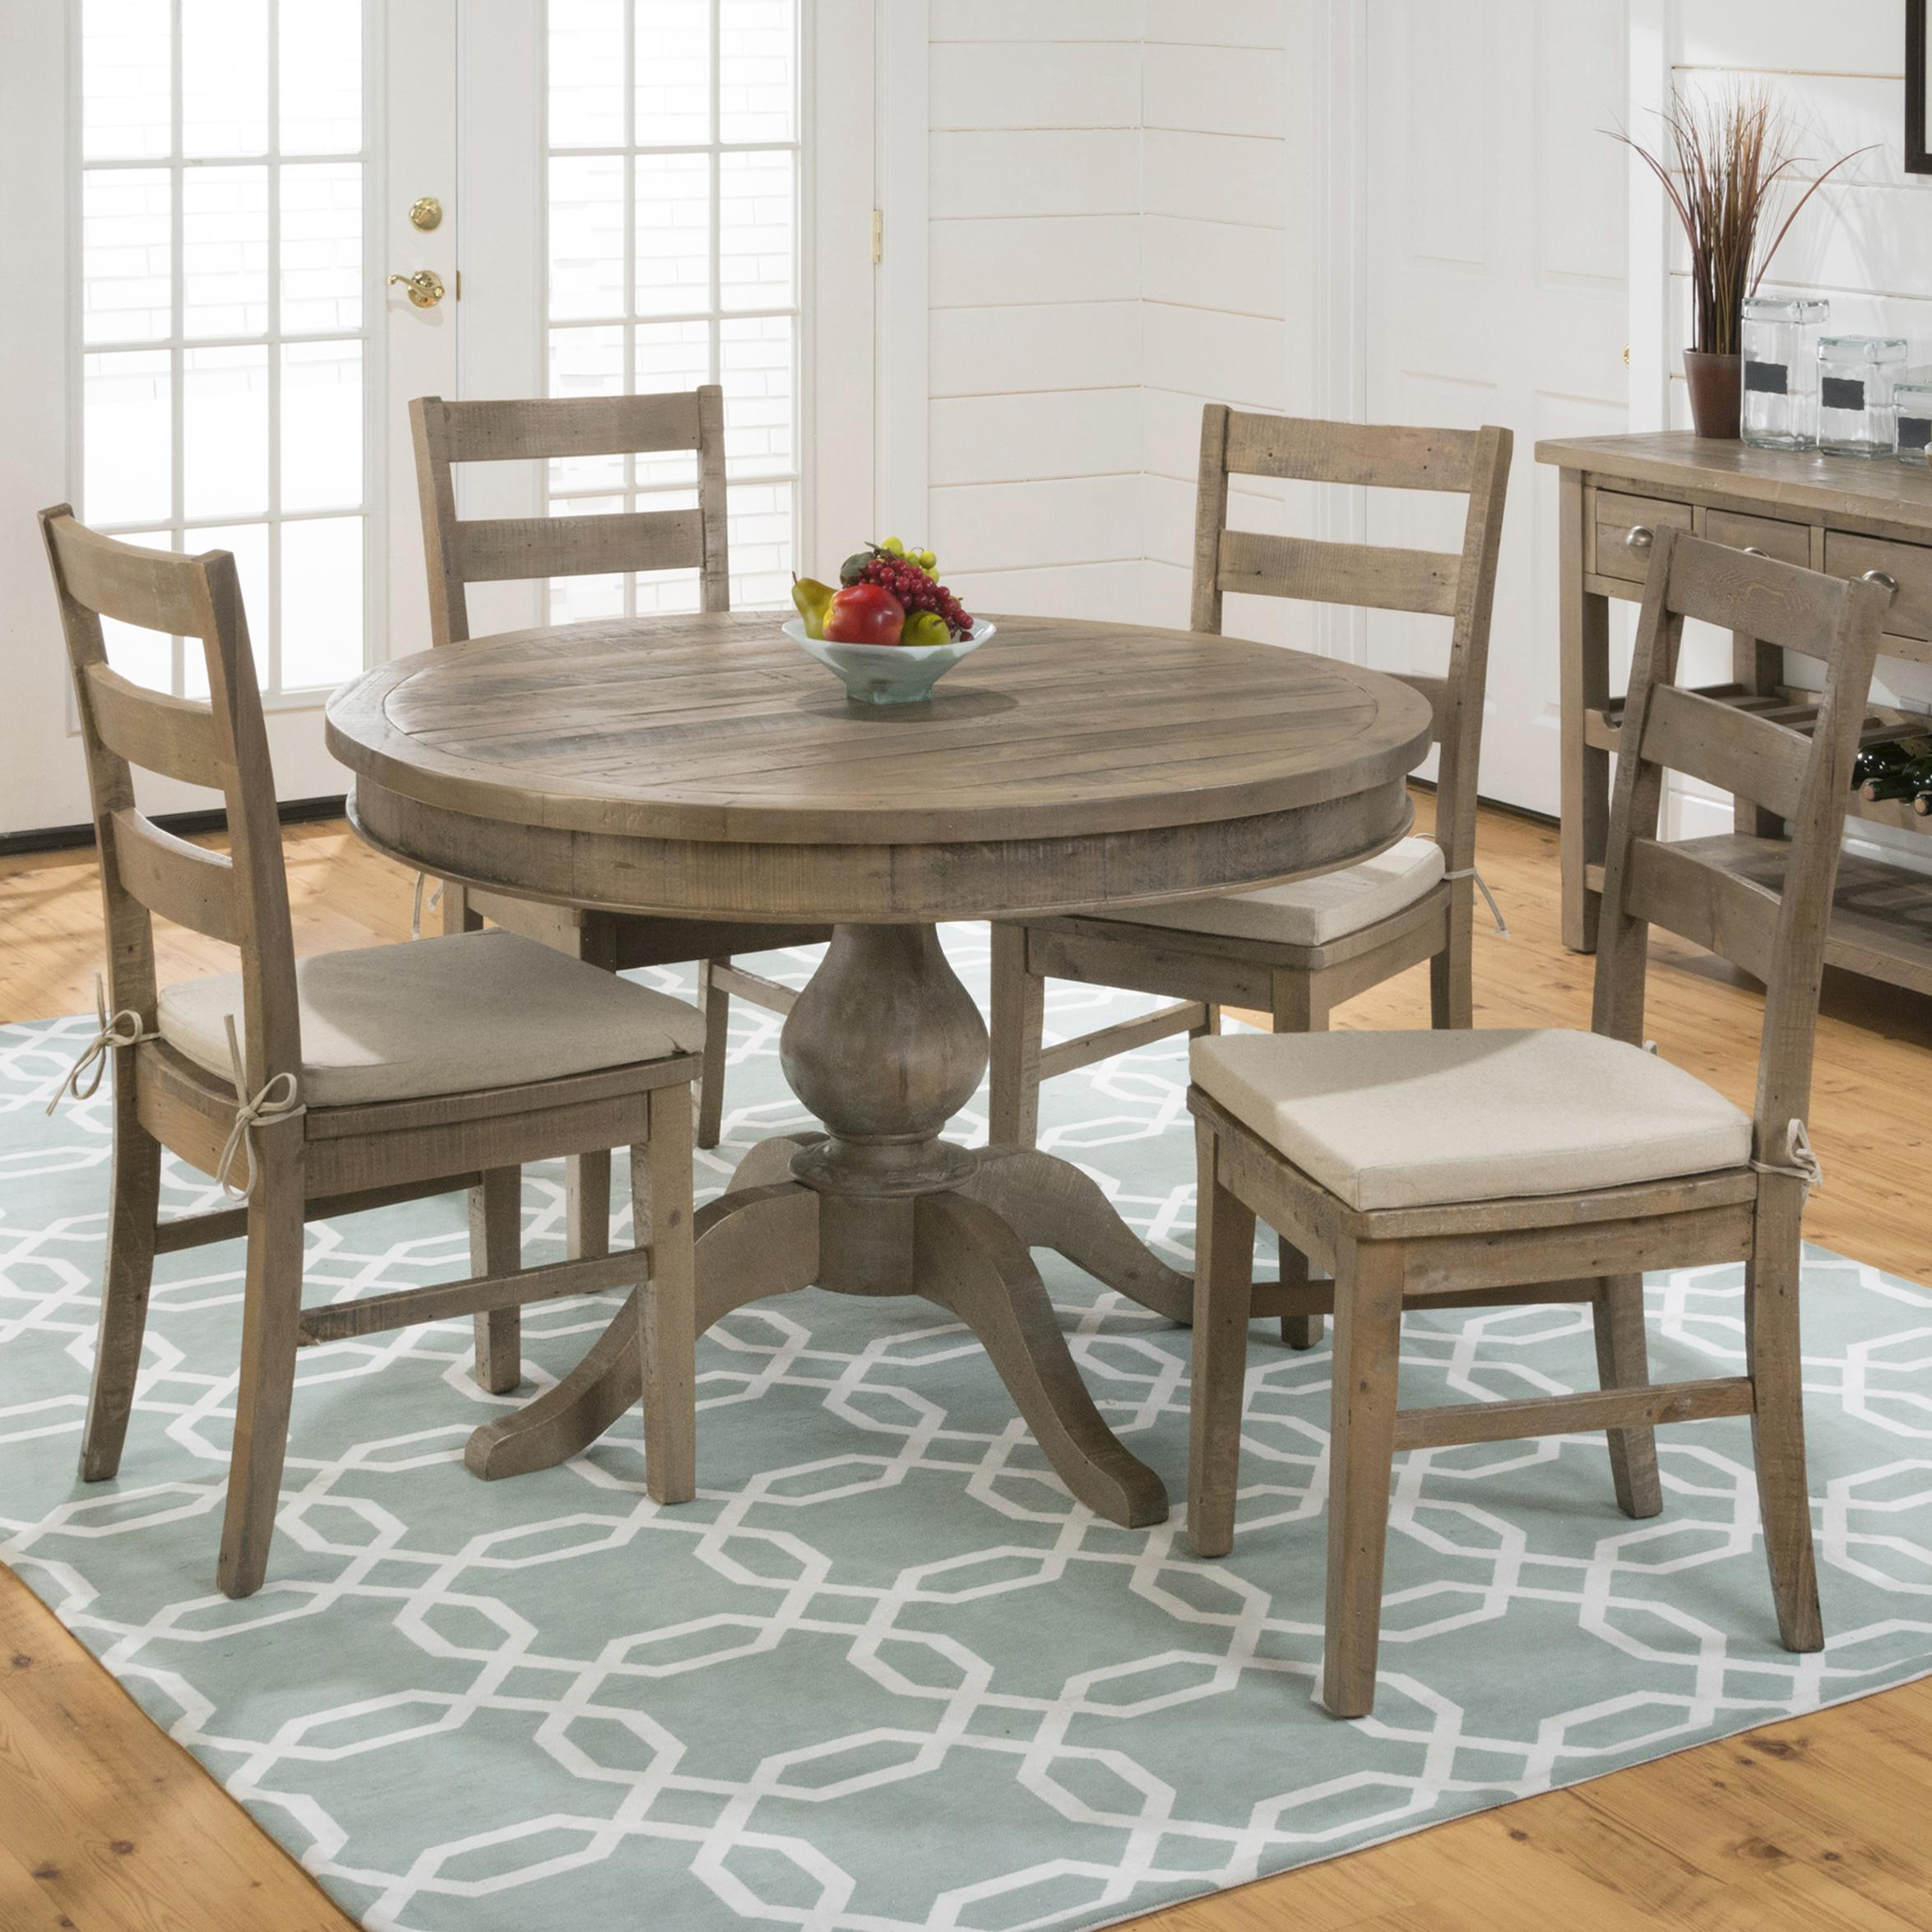 5 Chair Dining Set: Belfort Essentials Slater Mill Pine Round Table And